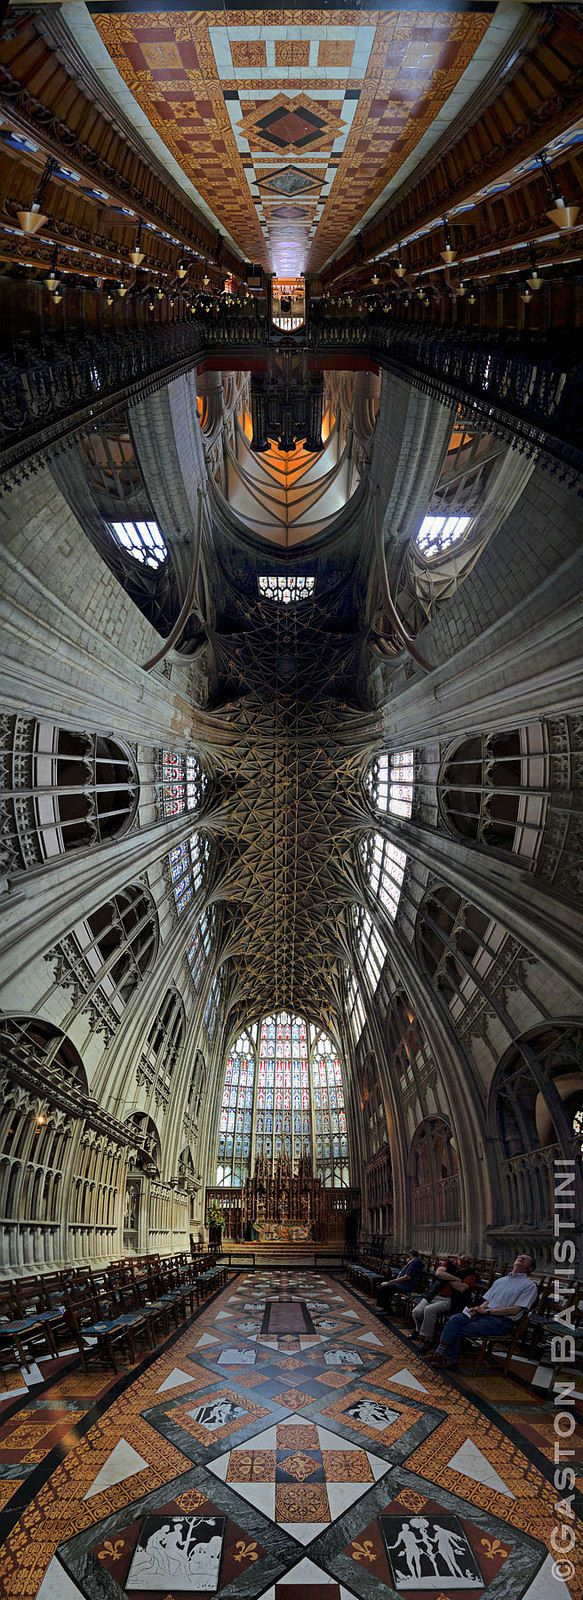 Gloucester Cathedral or the Cathedral Church of St Peter and the Holy and Indivisible Trinity, England, United Kingdom | Flickr - Photo Sharing!